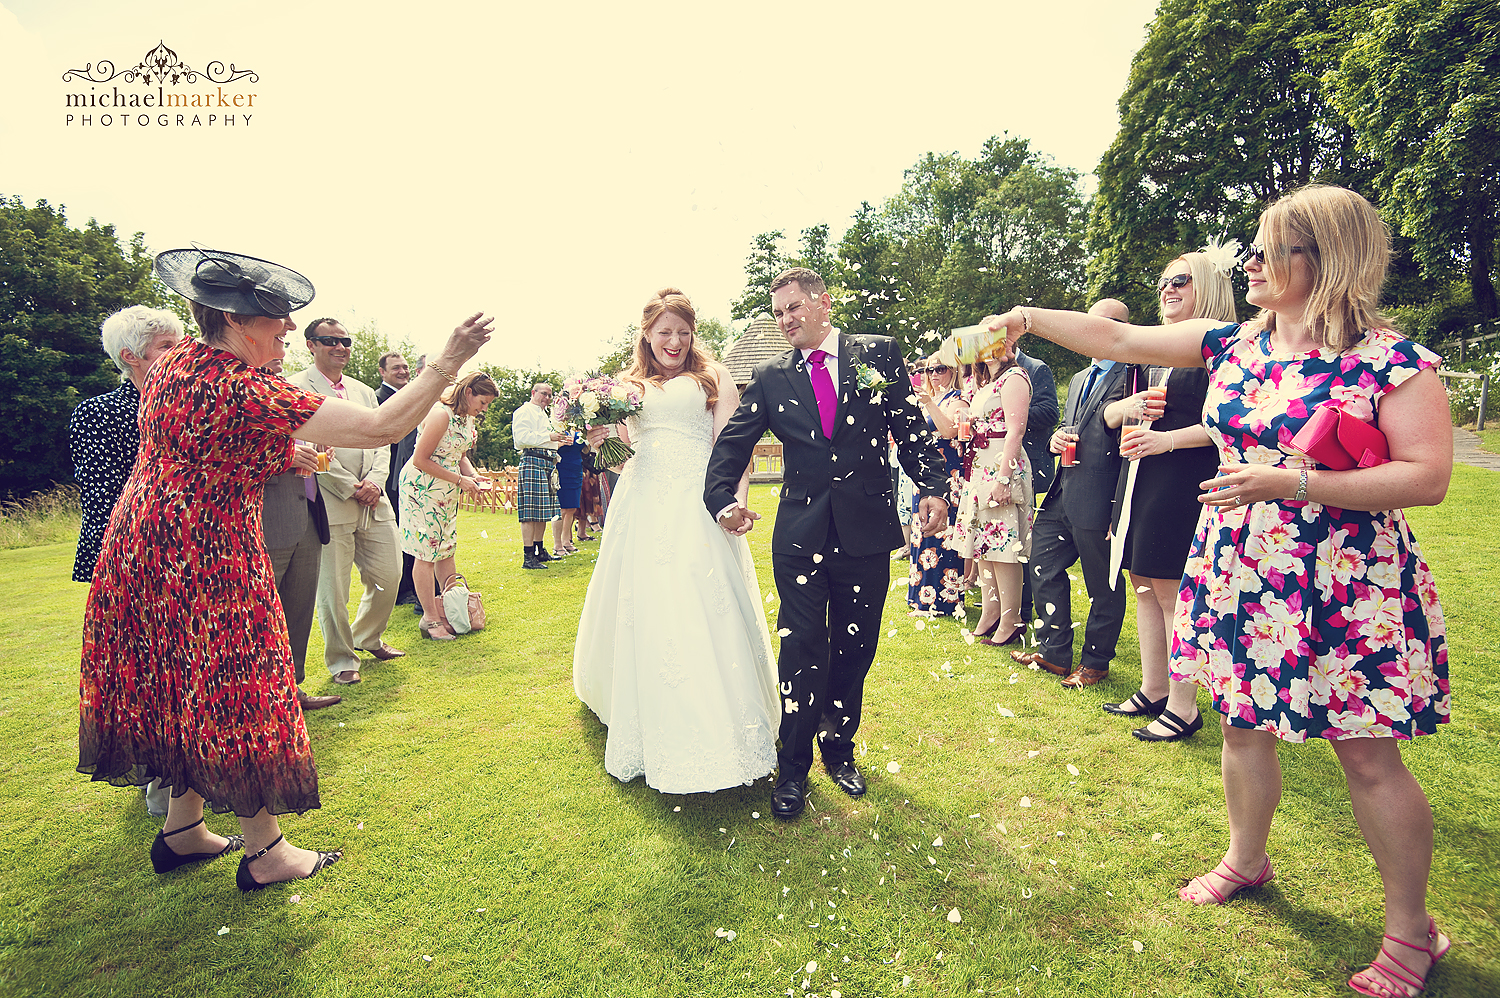 Guests throwing confetti at bride and groom at Priston Mill wedding